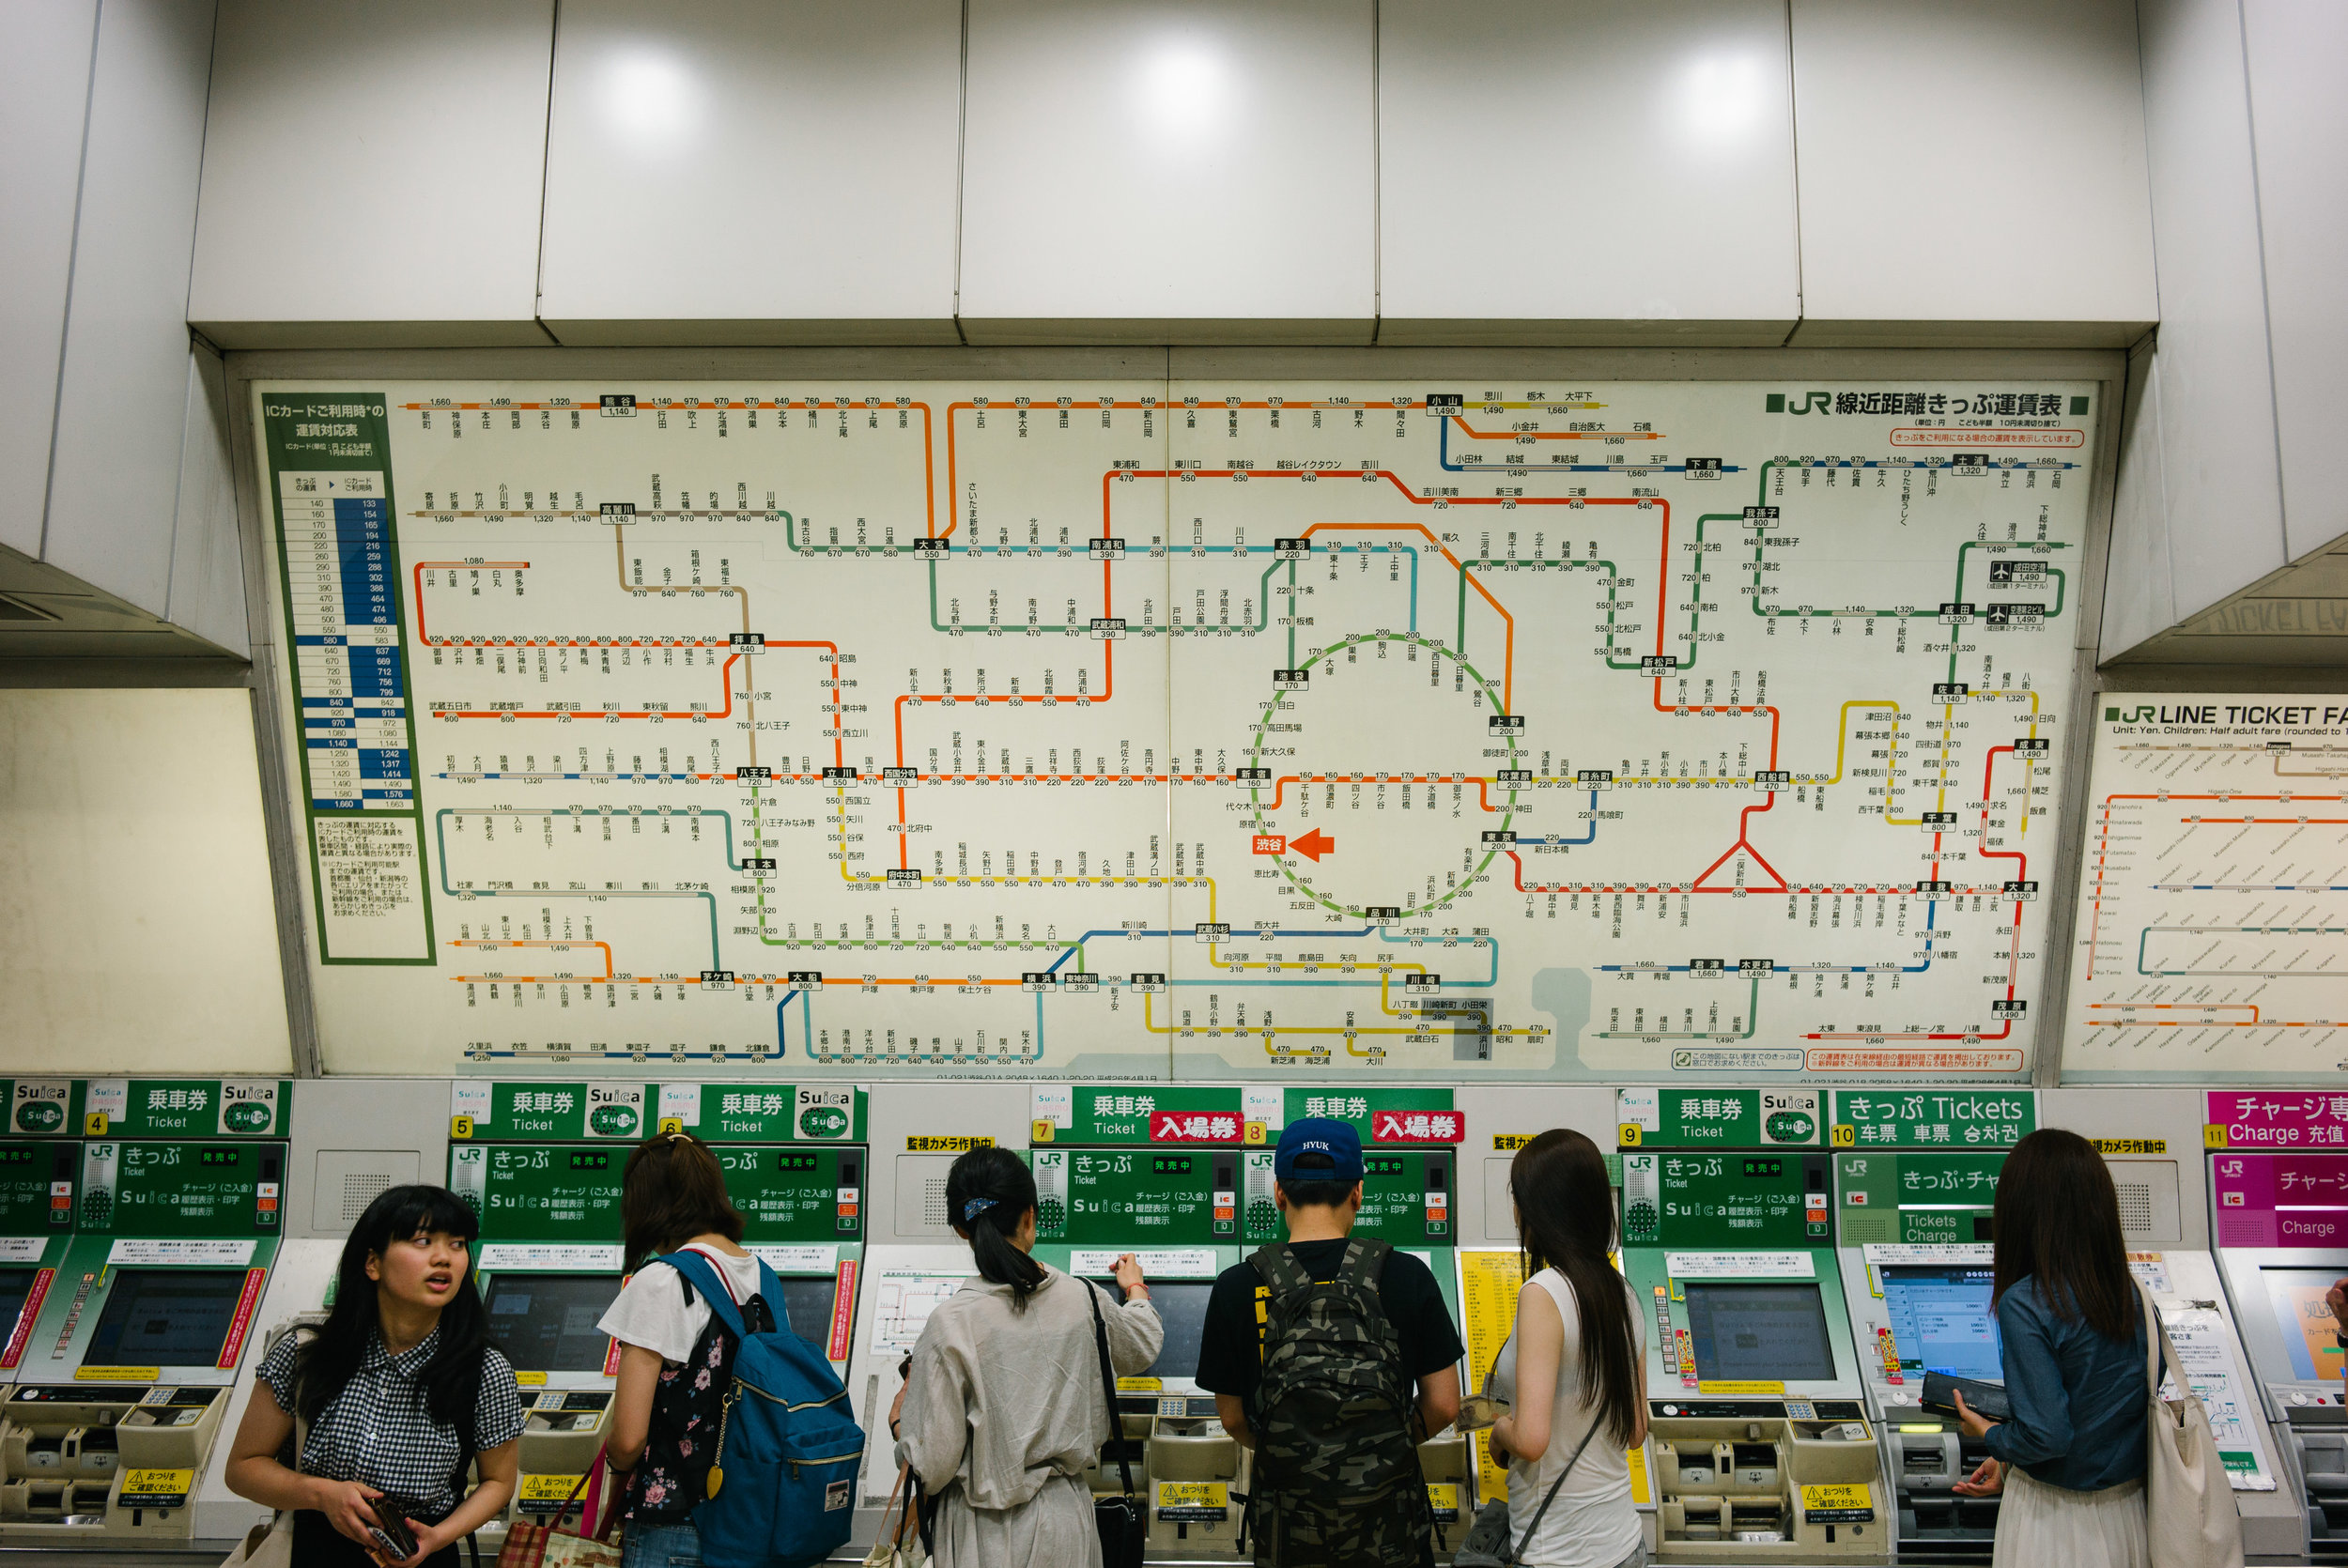 Despite its complexity, Japan's railway is one of the most clean and efficient railway systems in the World. Tokyo - Clifford Darby 2017